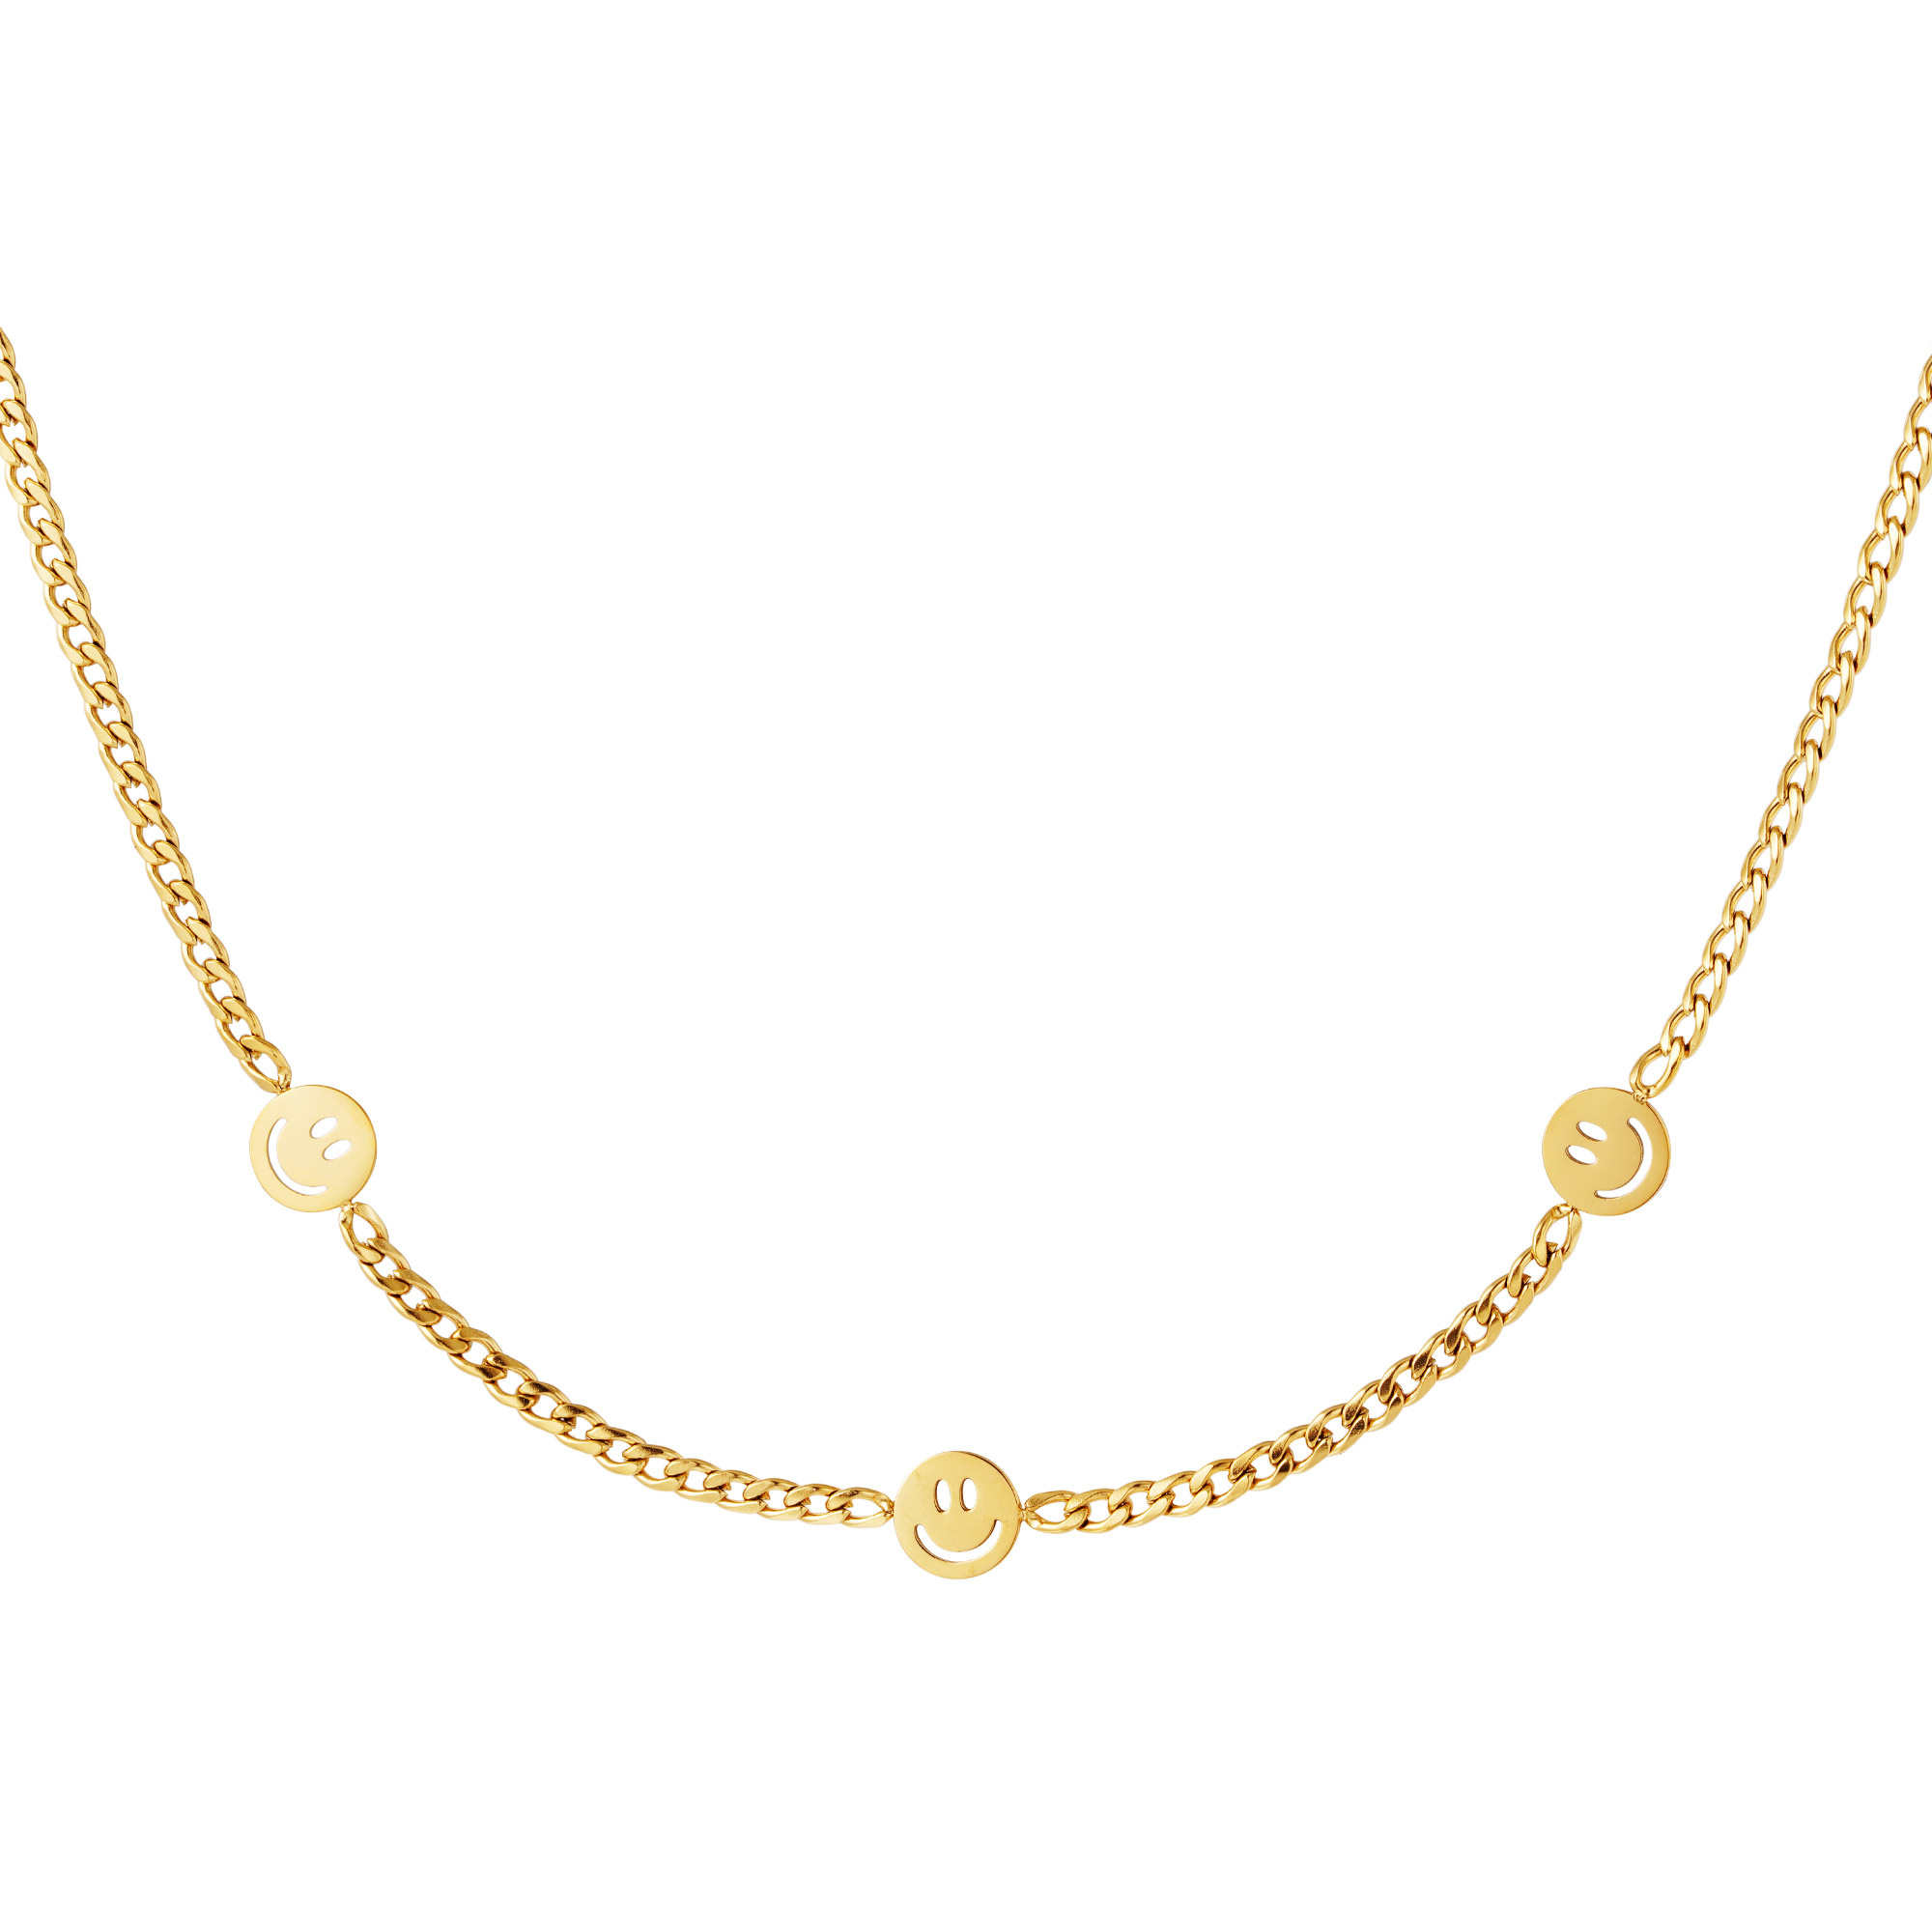 By Moise KETTING 3 SMILEYS GOUD